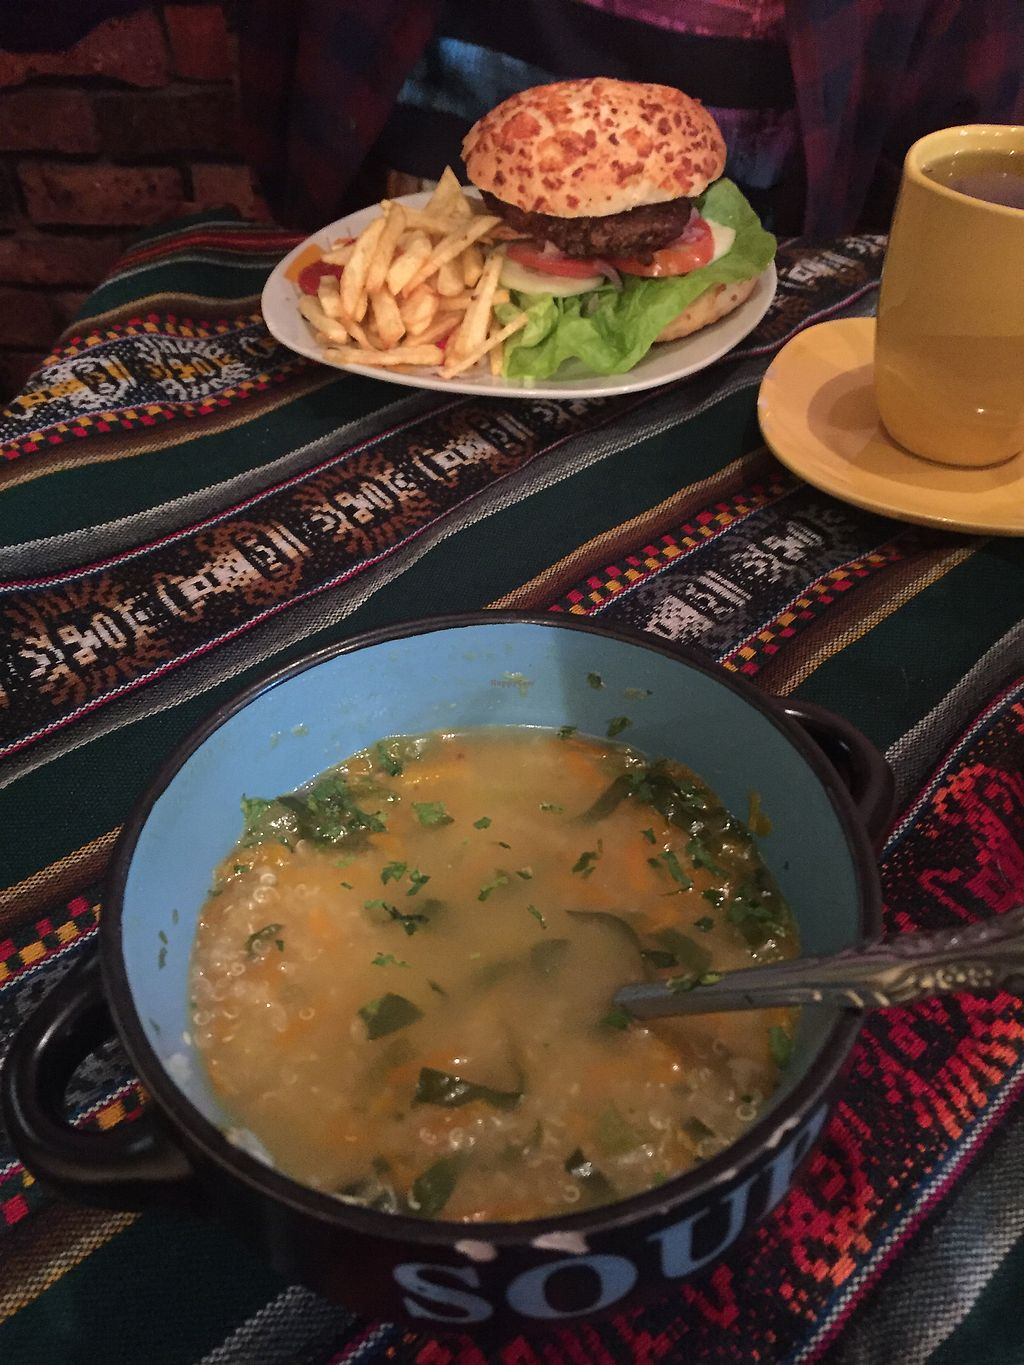 "Photo of Koala Cafe  by <a href=""/members/profile/Dianebg"">Dianebg</a> <br/>Quinoa soup and lentil burger  <br/> October 29, 2017  - <a href='/contact/abuse/image/75648/319924'>Report</a>"